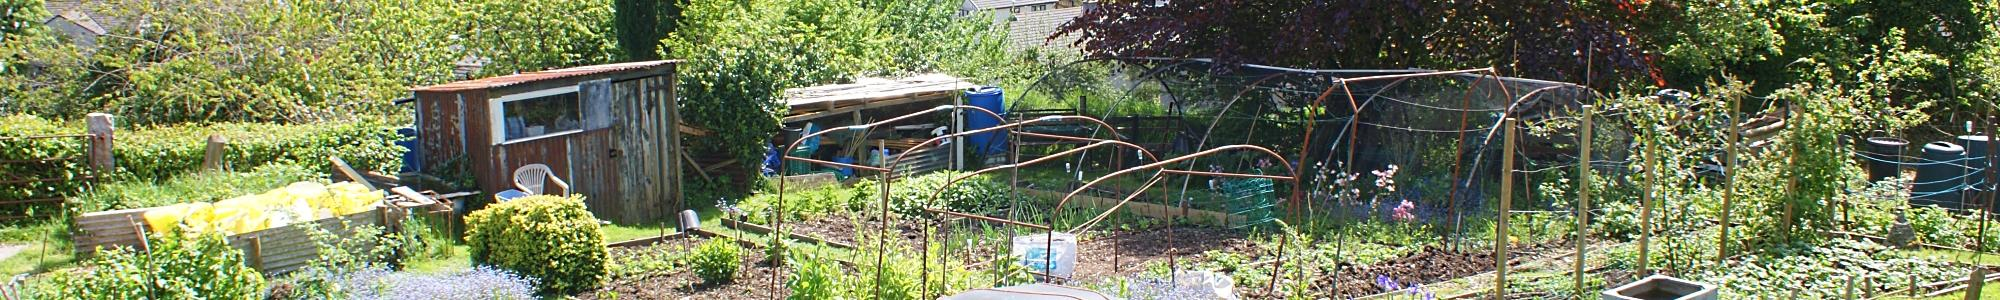 Butcher Park Hill Allotments